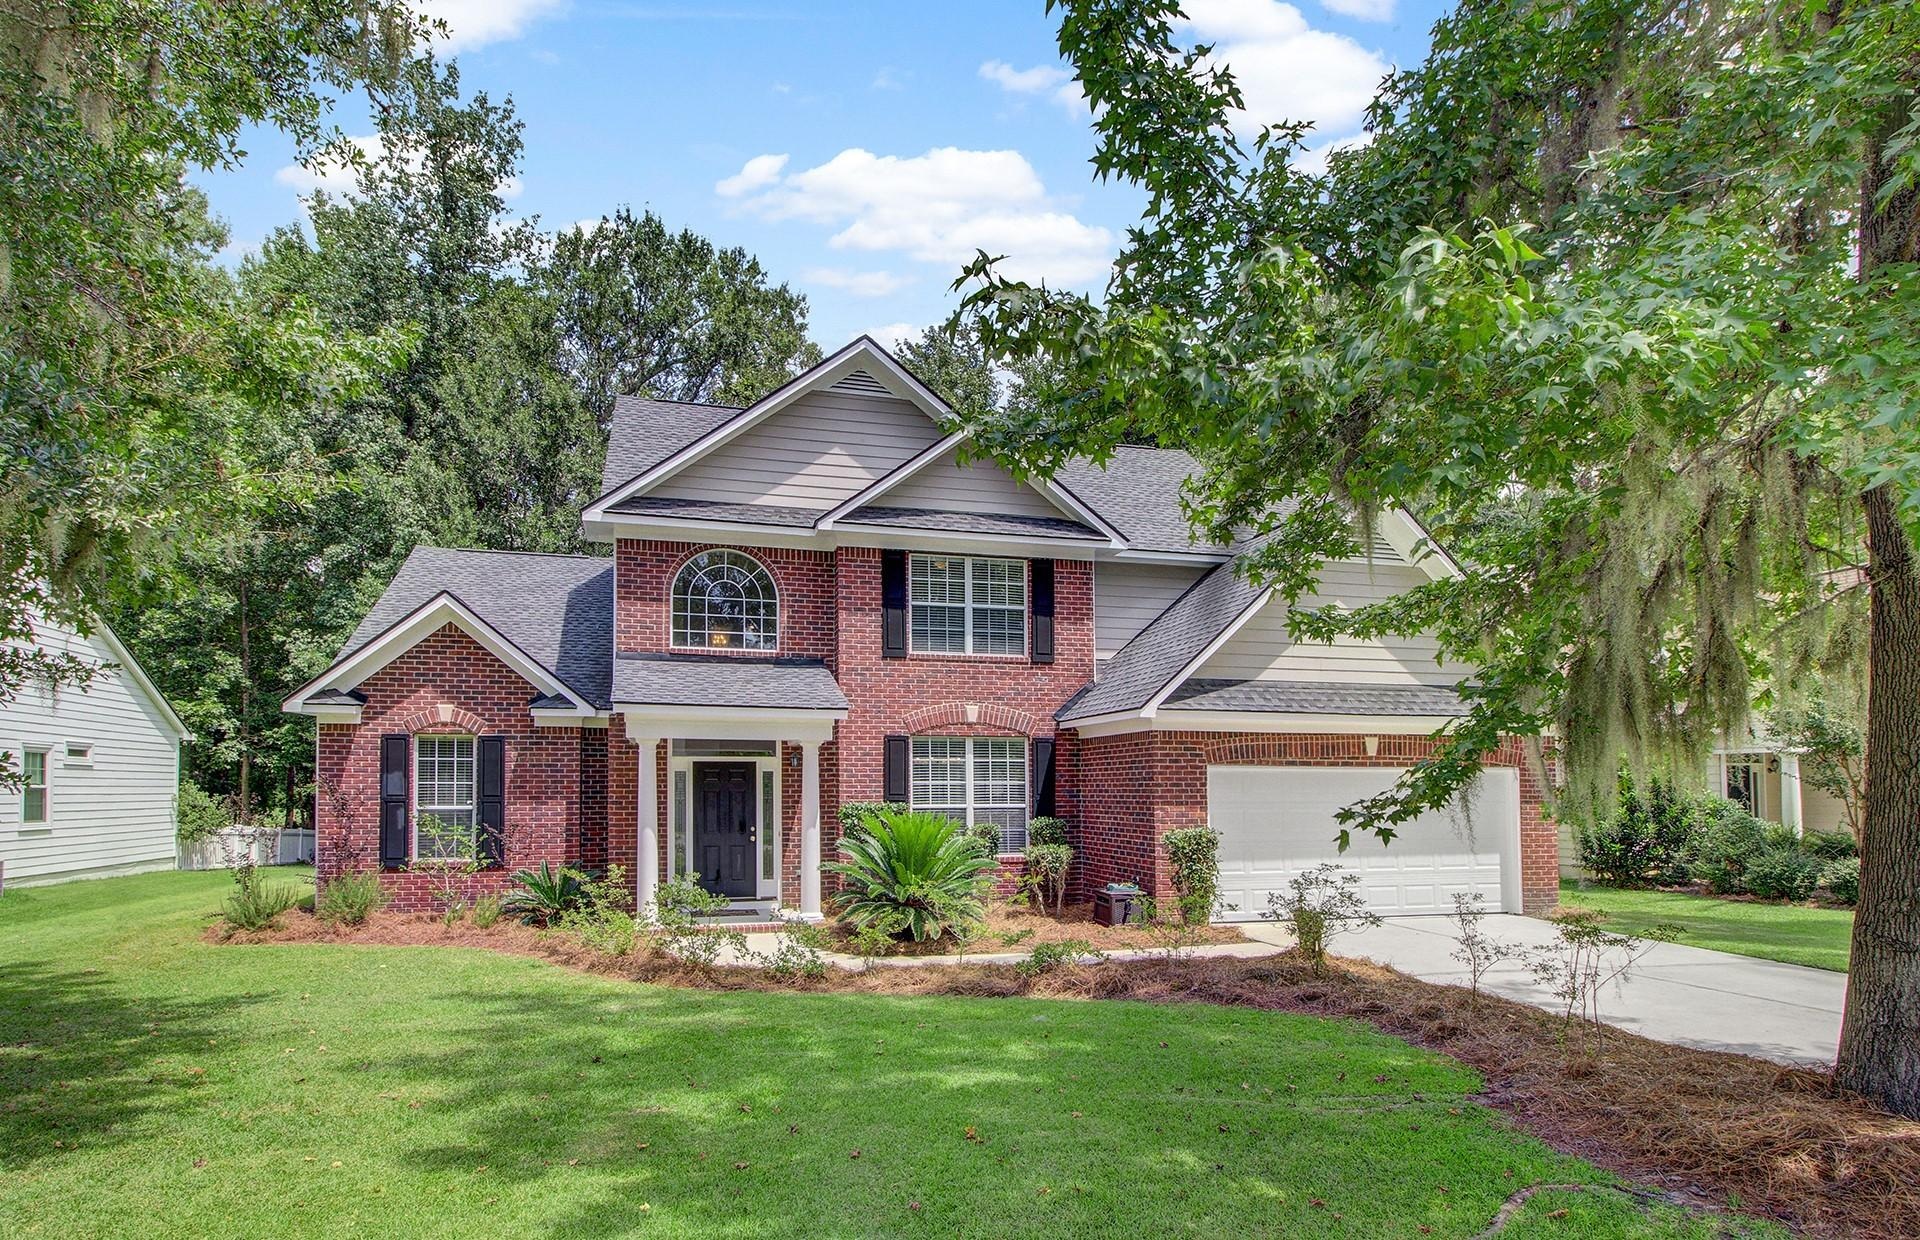 592 Pointe of Oaks Road Summerville, Sc 29485